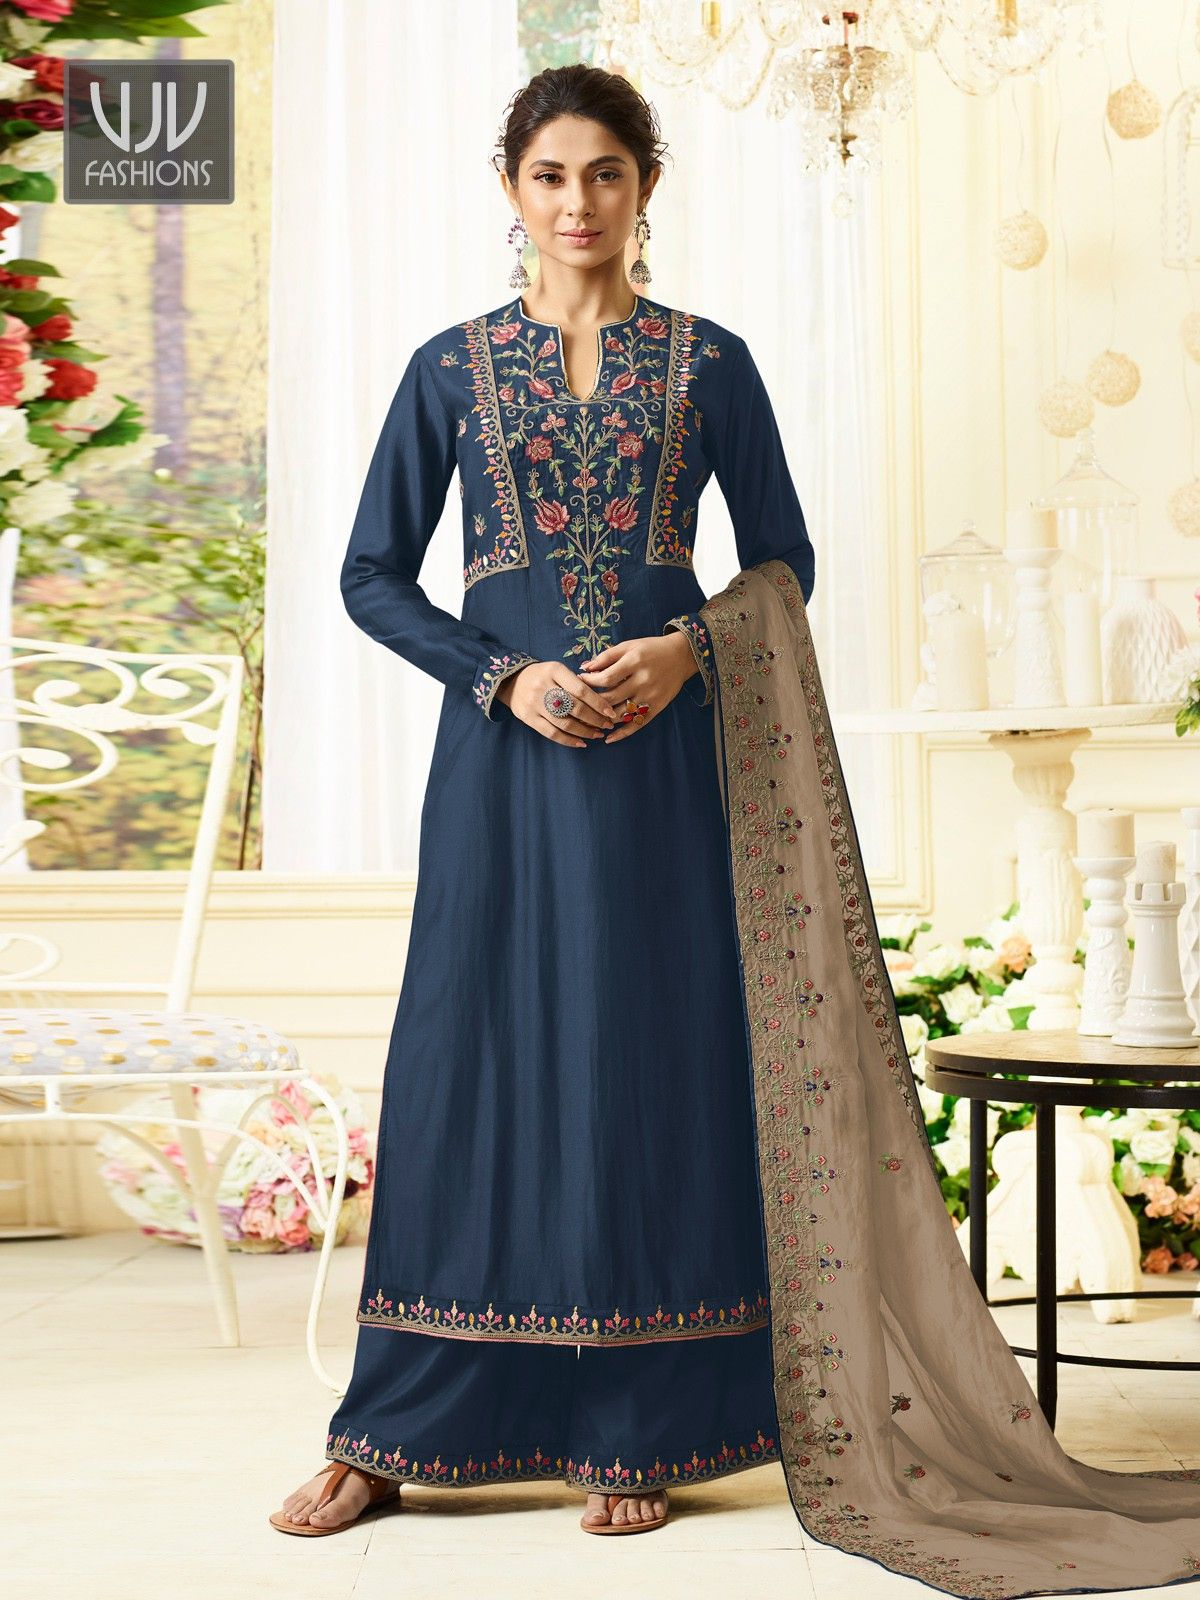 9cdad1a242 Jennifer Winget Navy Blue Silk Designer Palazzo Suit Shop For salwar kameez  with customizable suit Online in India at VJV Fashions Available in all  Design ...